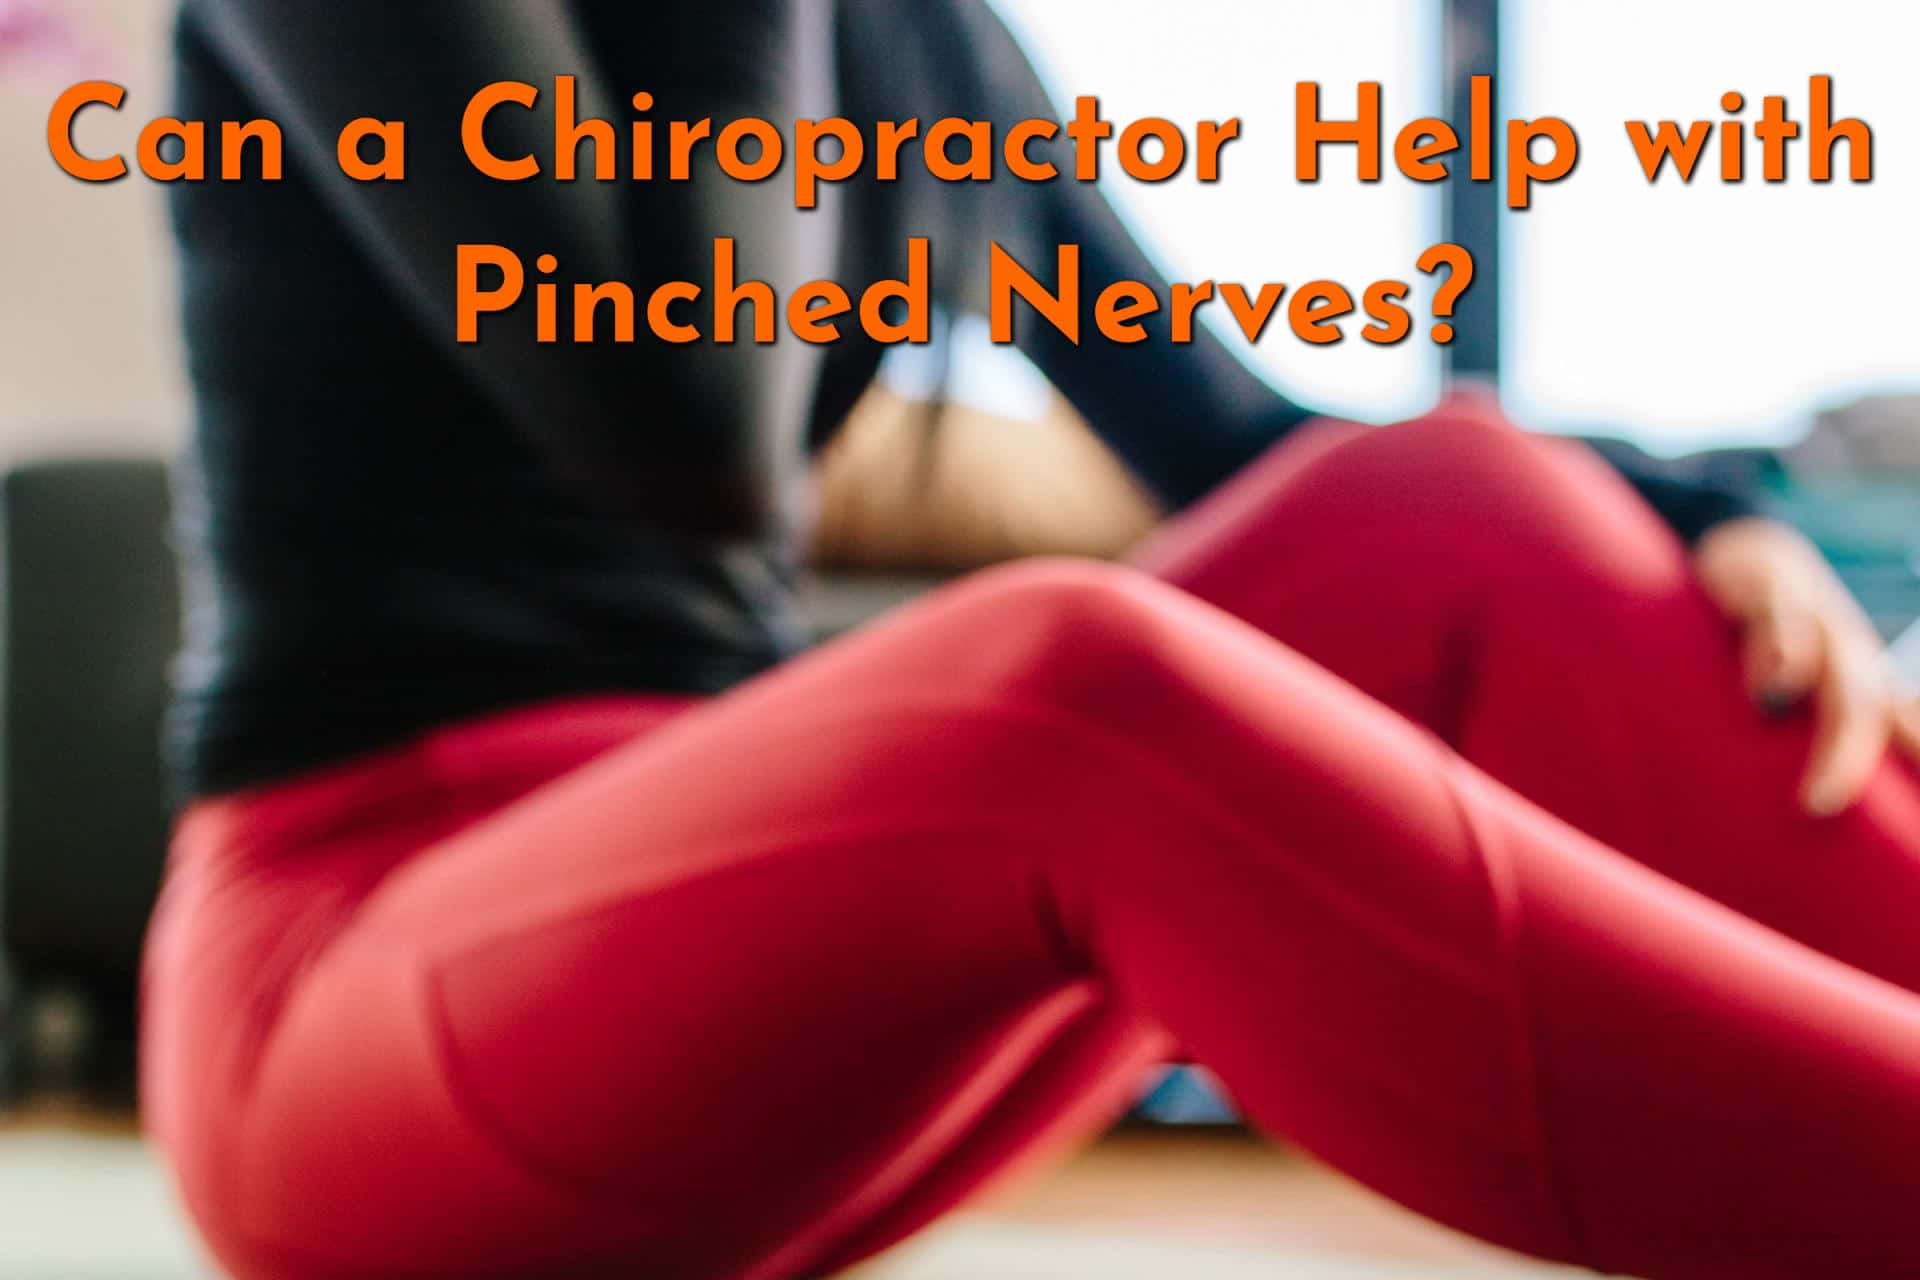 Can a Chiropractor Help with Pinched Nerves?